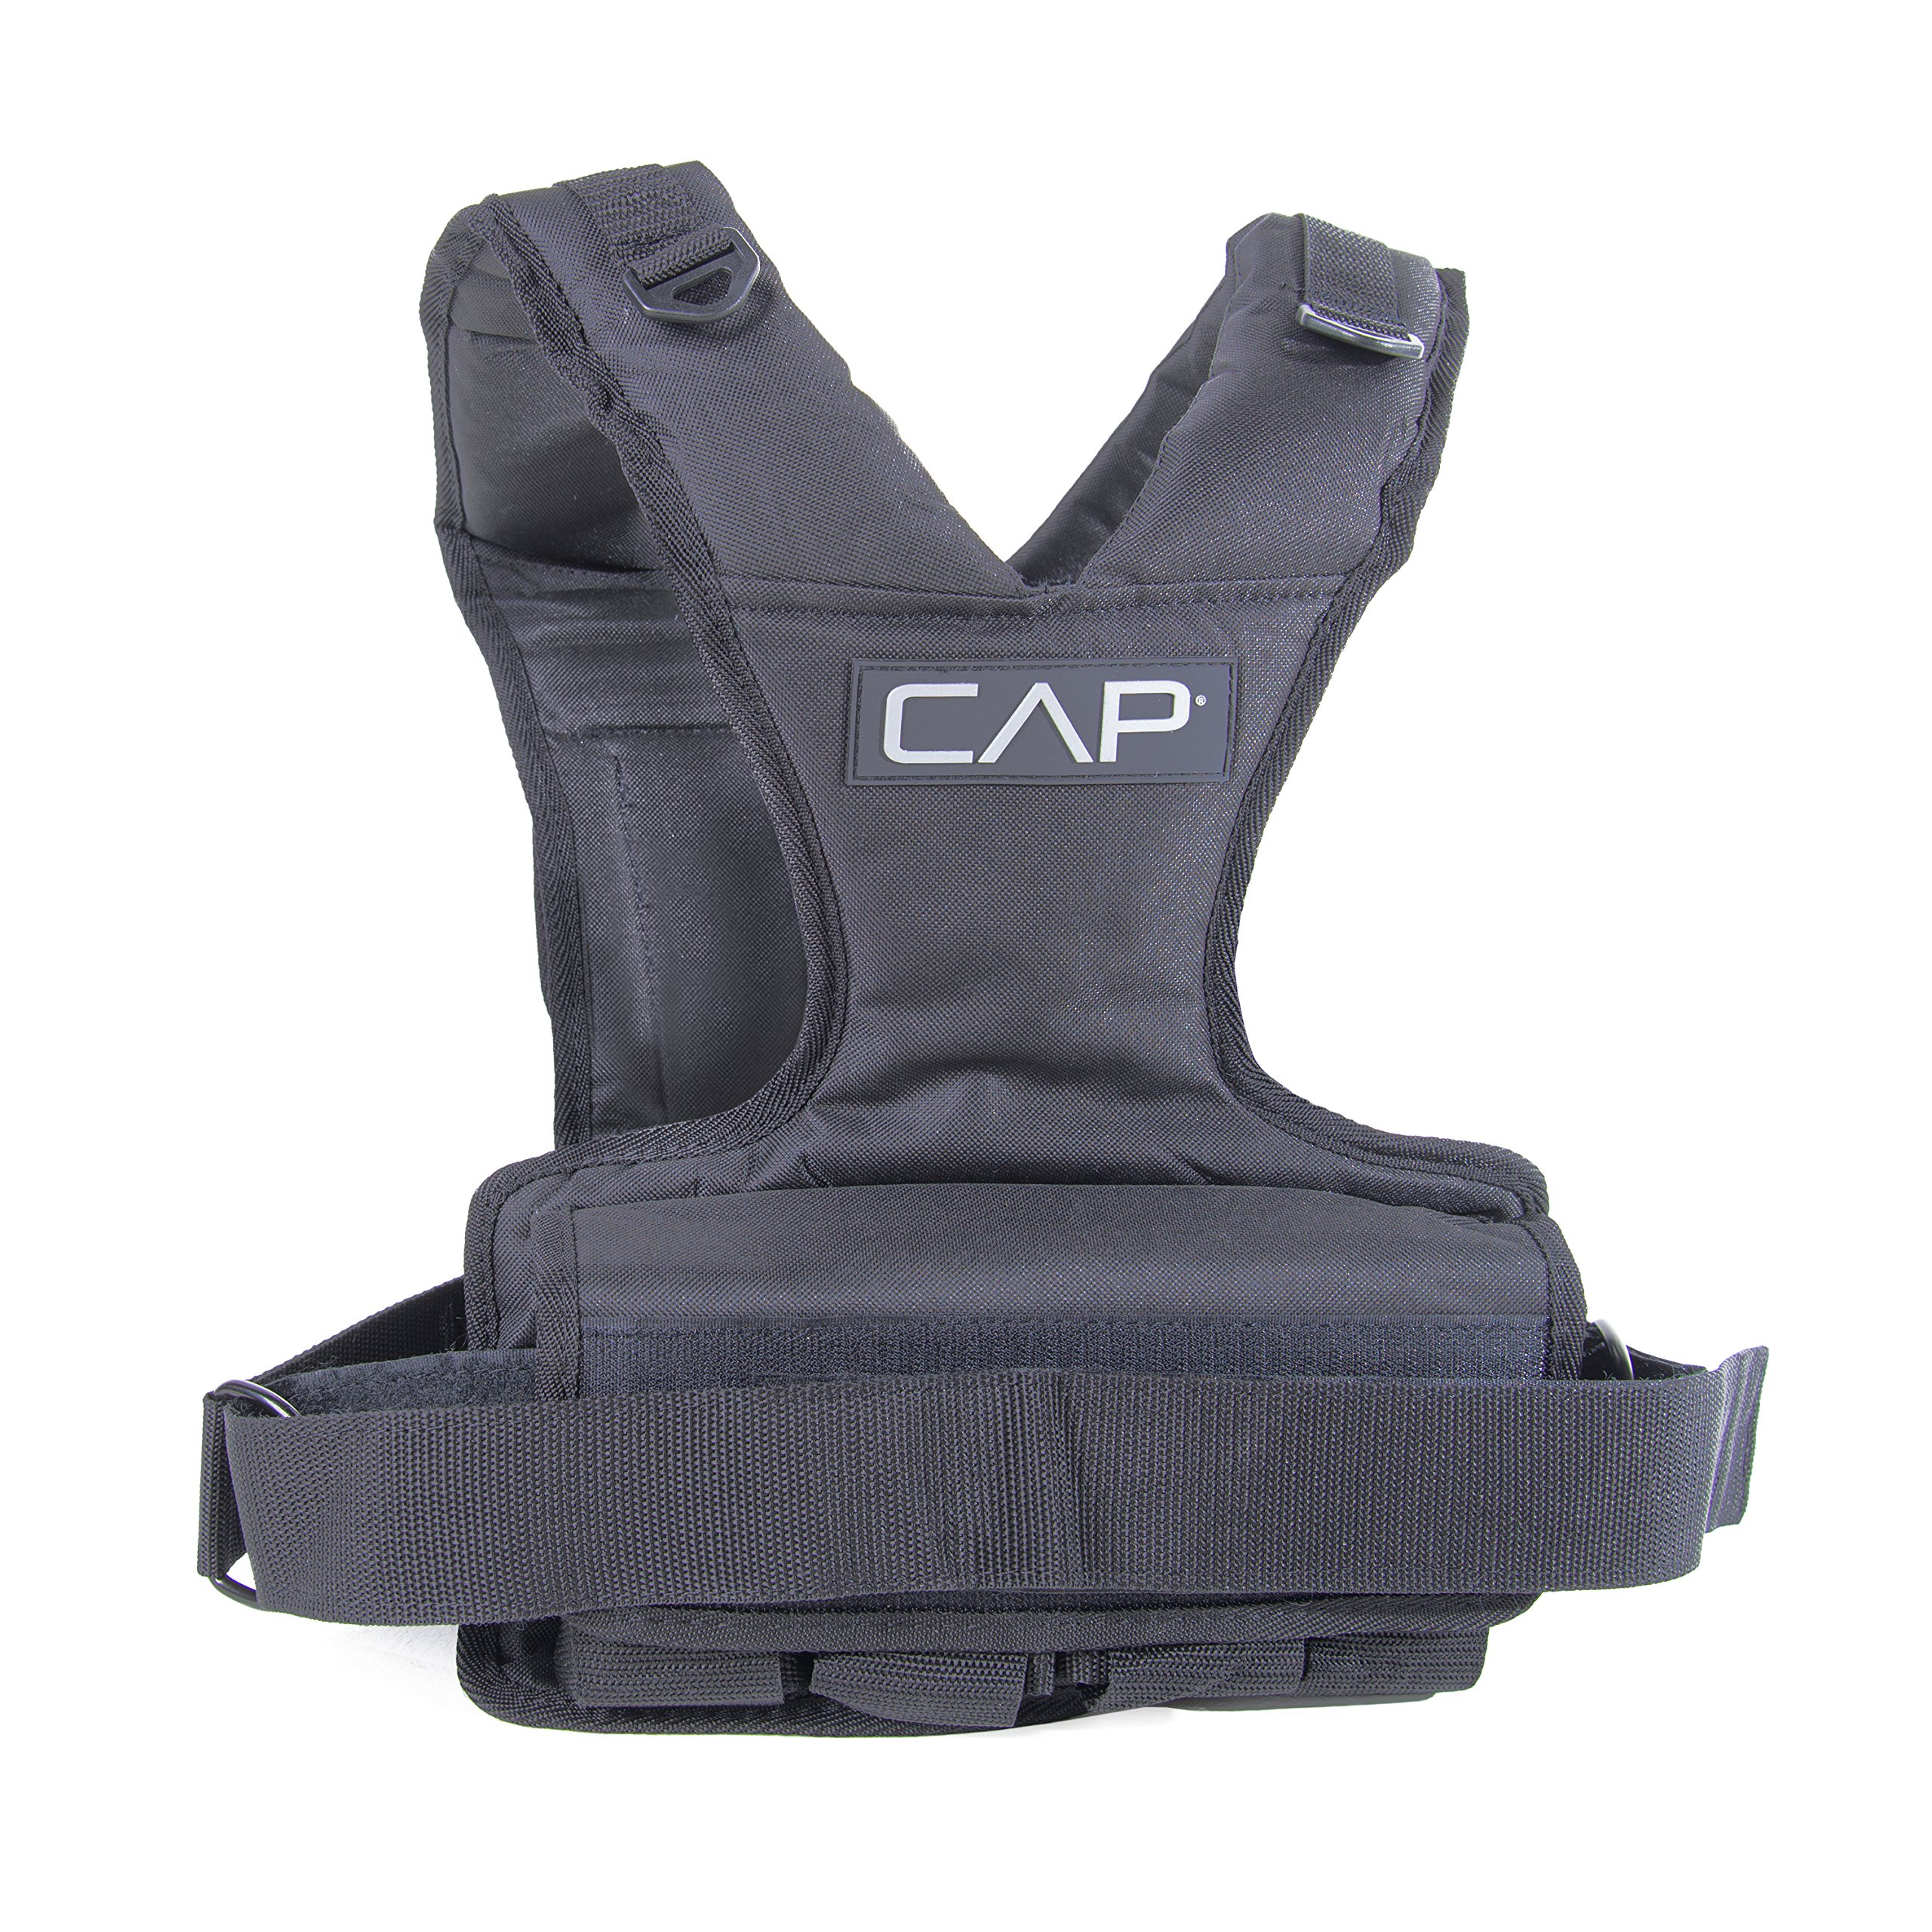 CAP Barbell Cap Weighted Vest for Women, 30 lb by CAP Barbell